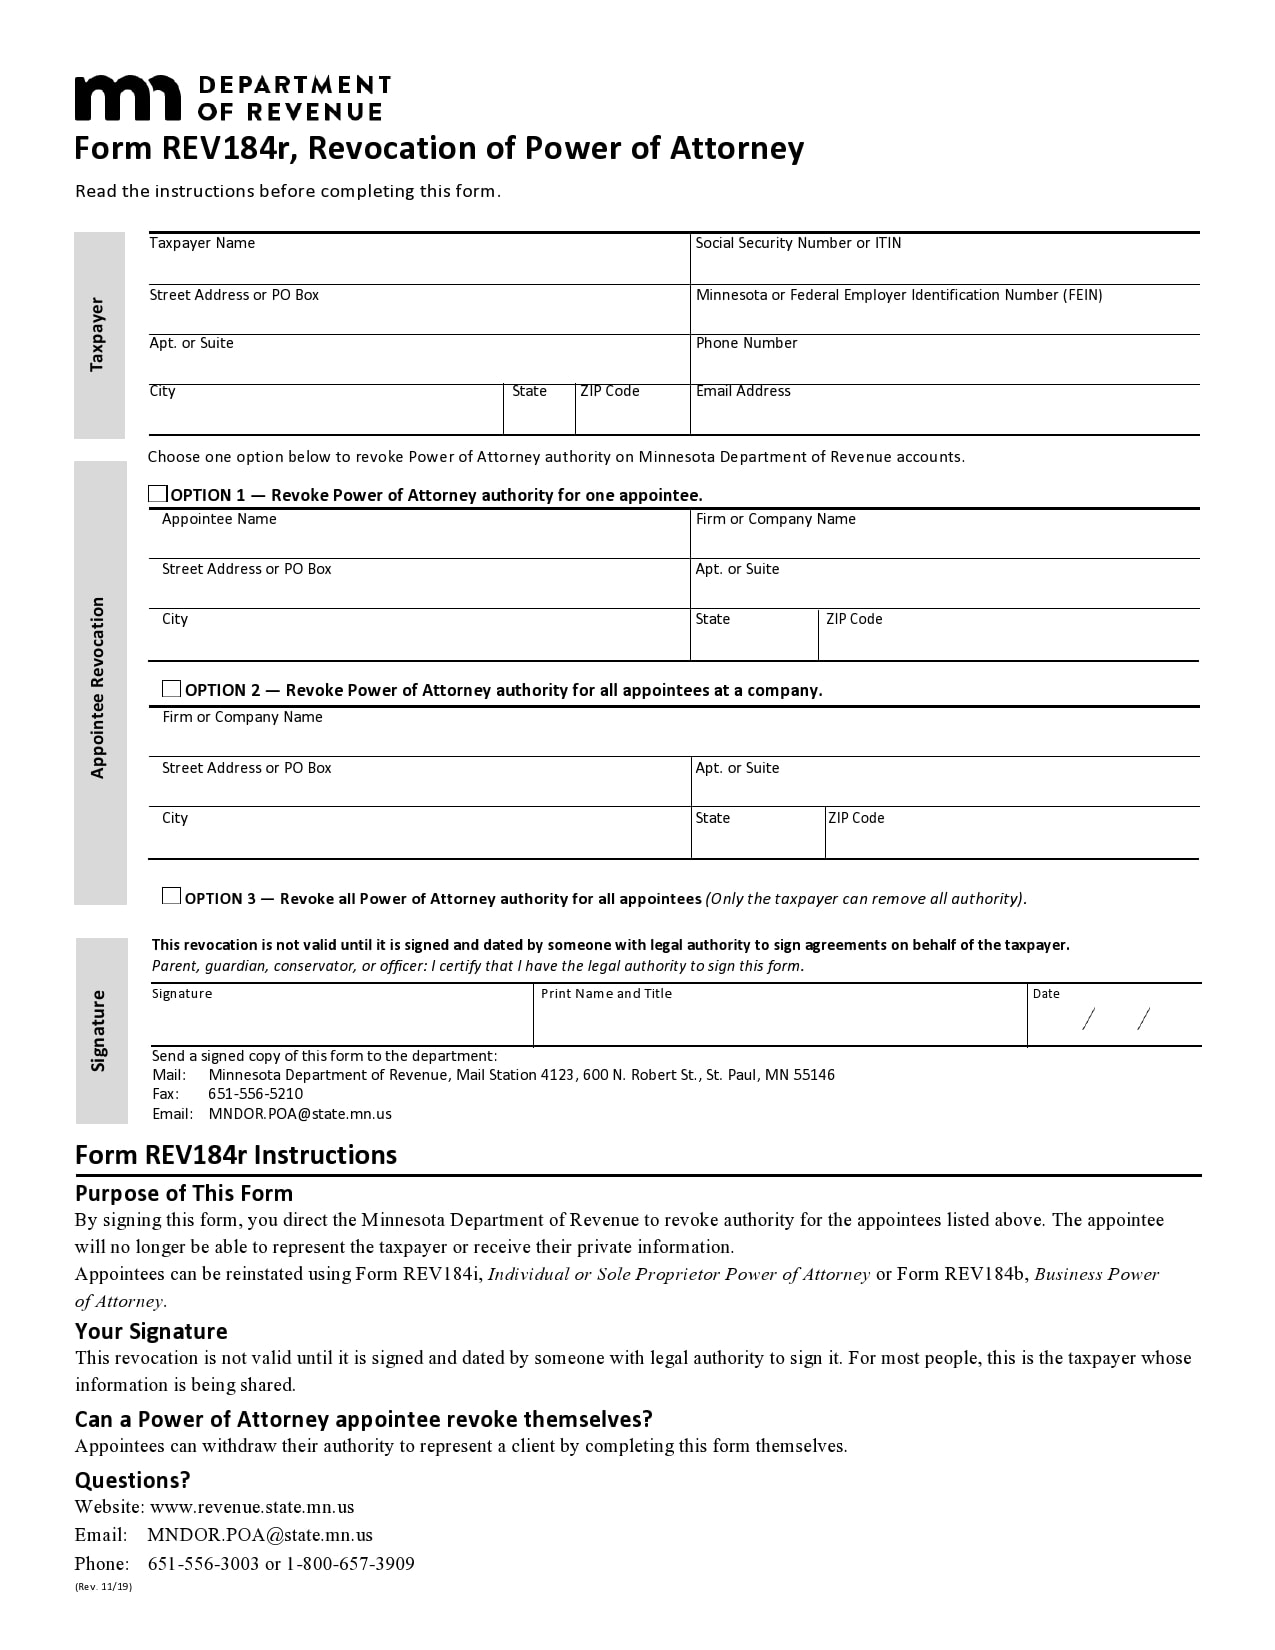 power of attorney revocation form 18